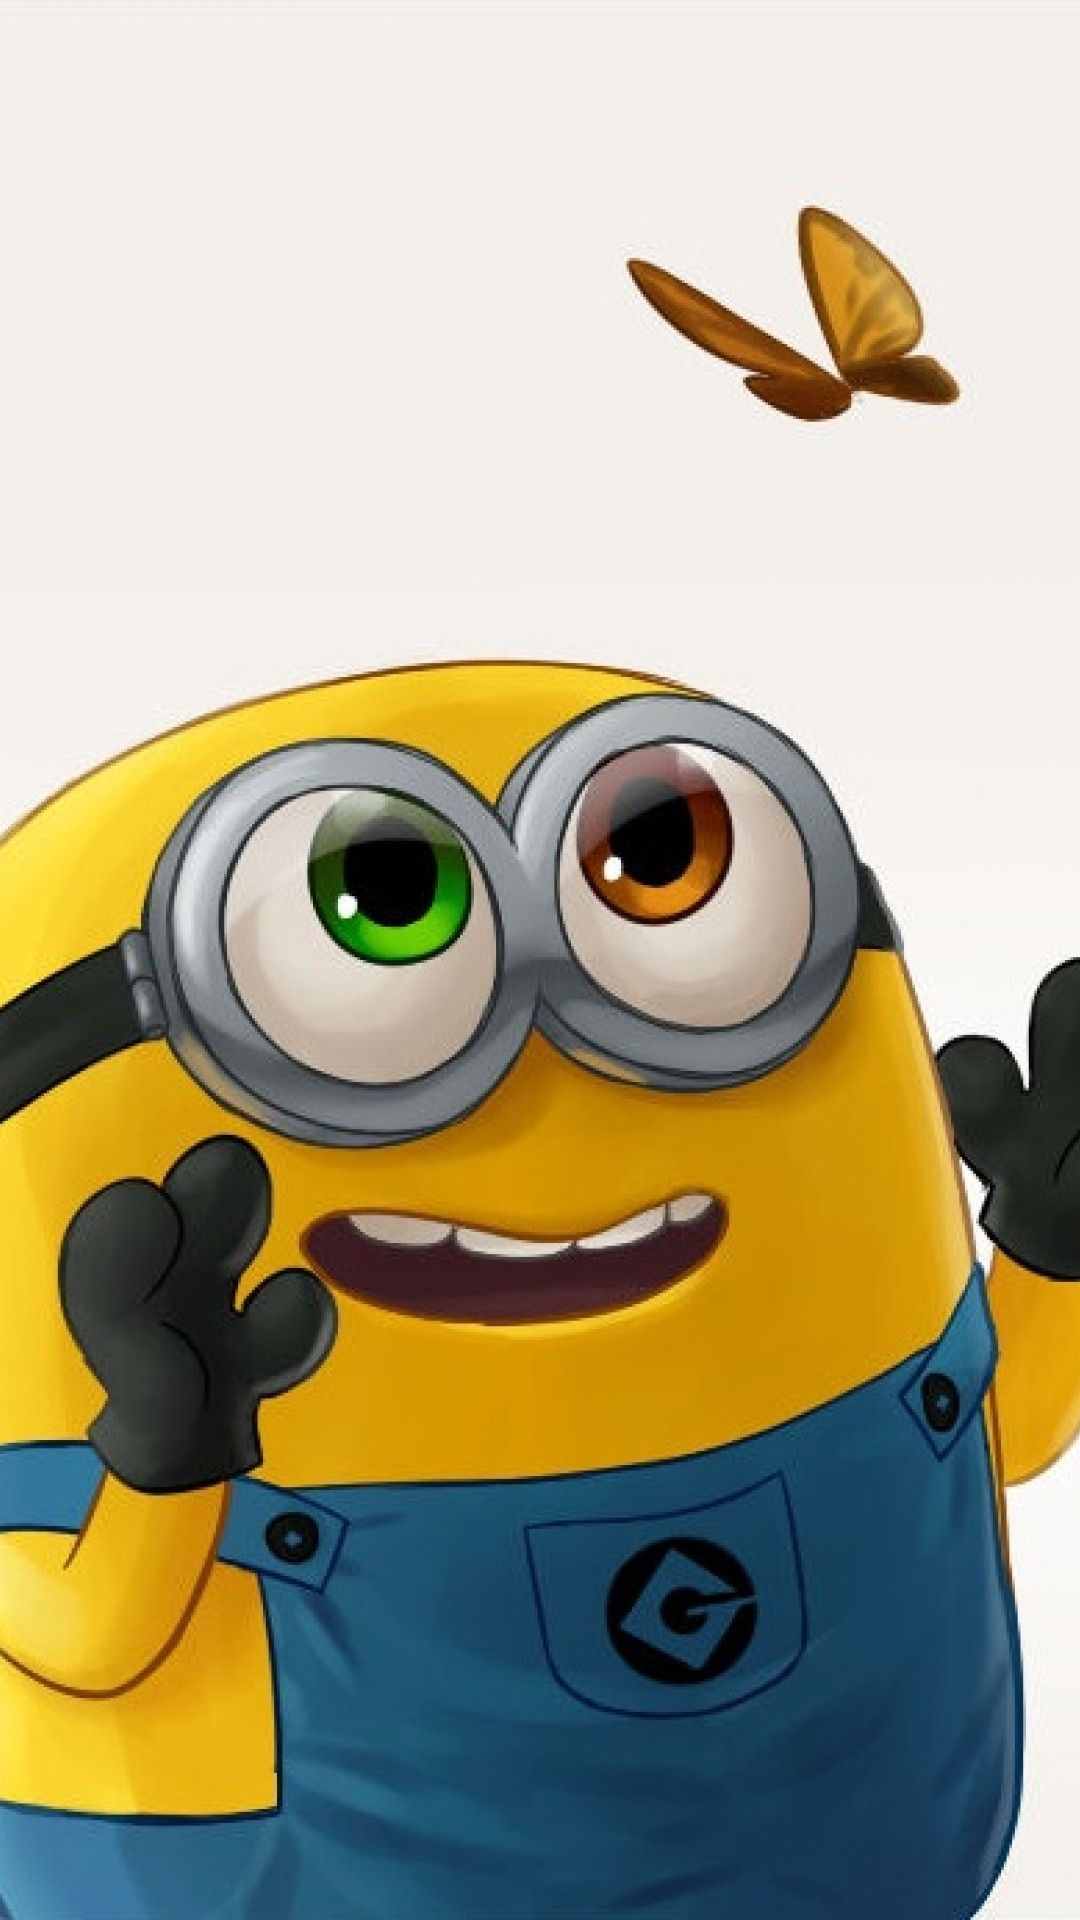 10 new minion wallpaper for android full hd 1920×1080 for pc desktop